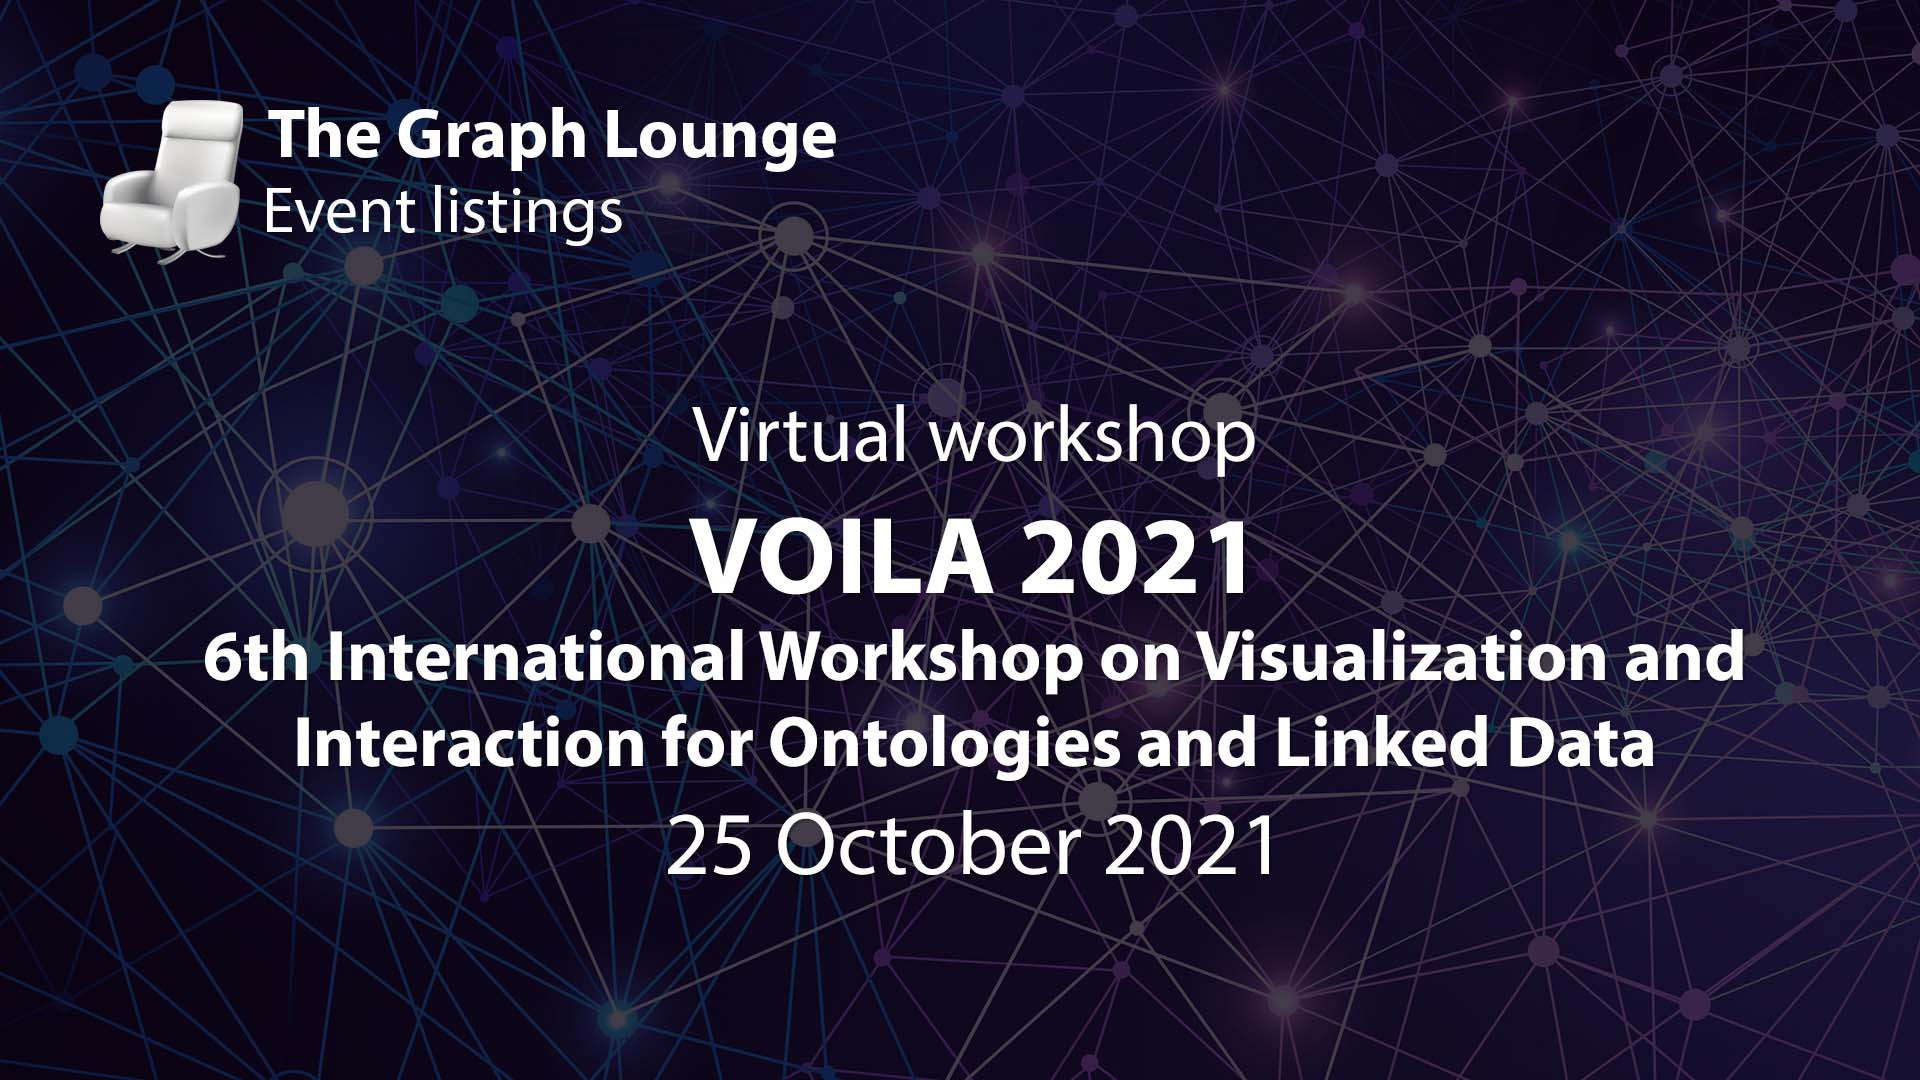 VOILA 2021 (6th International Workshop on Visualization and Interaction for Ontologies and Linked Data)